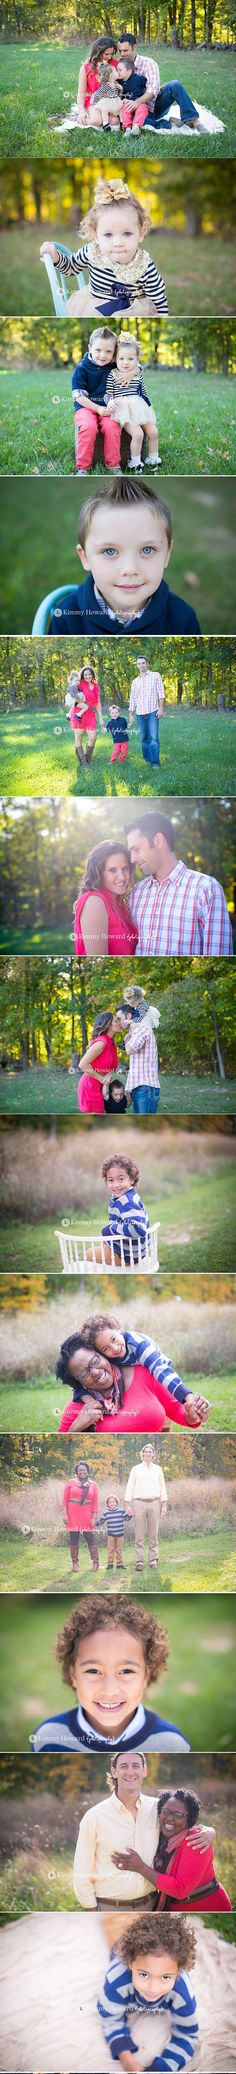 Fall {2013 Family Sessions} Avon, IN Family Photographer